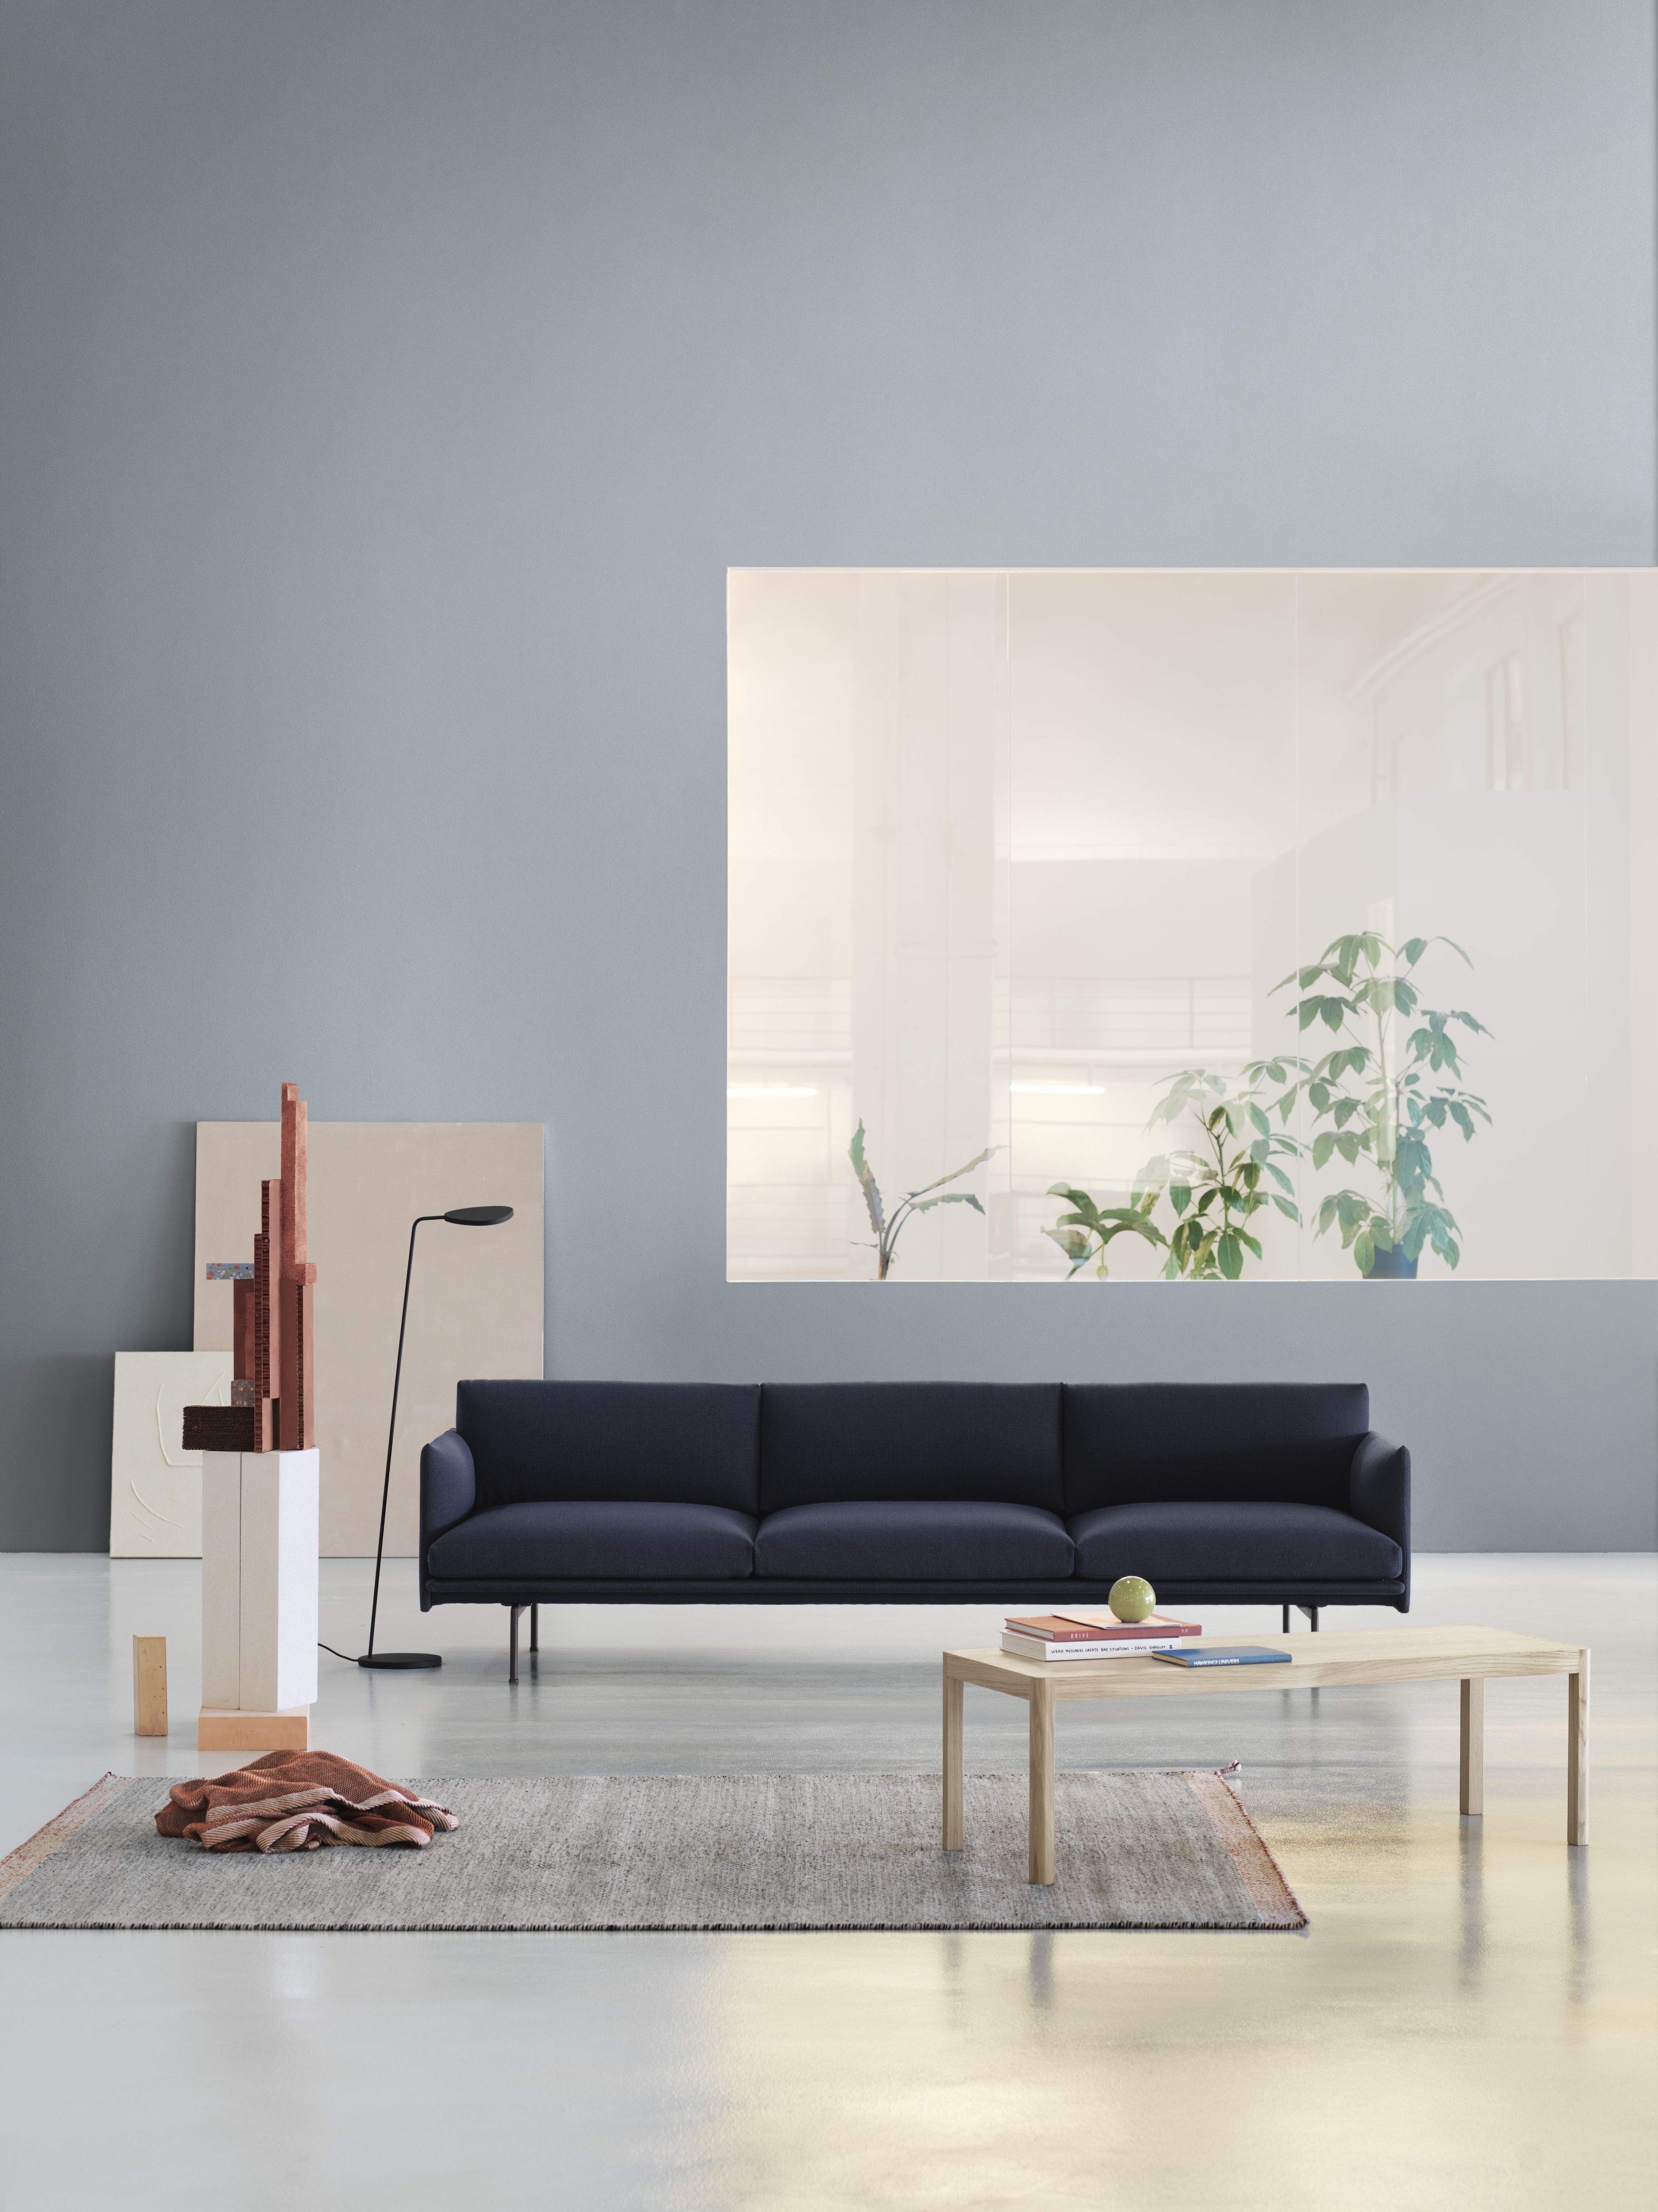 Muuto s newest collection introduces the Workshop Coffee Table by